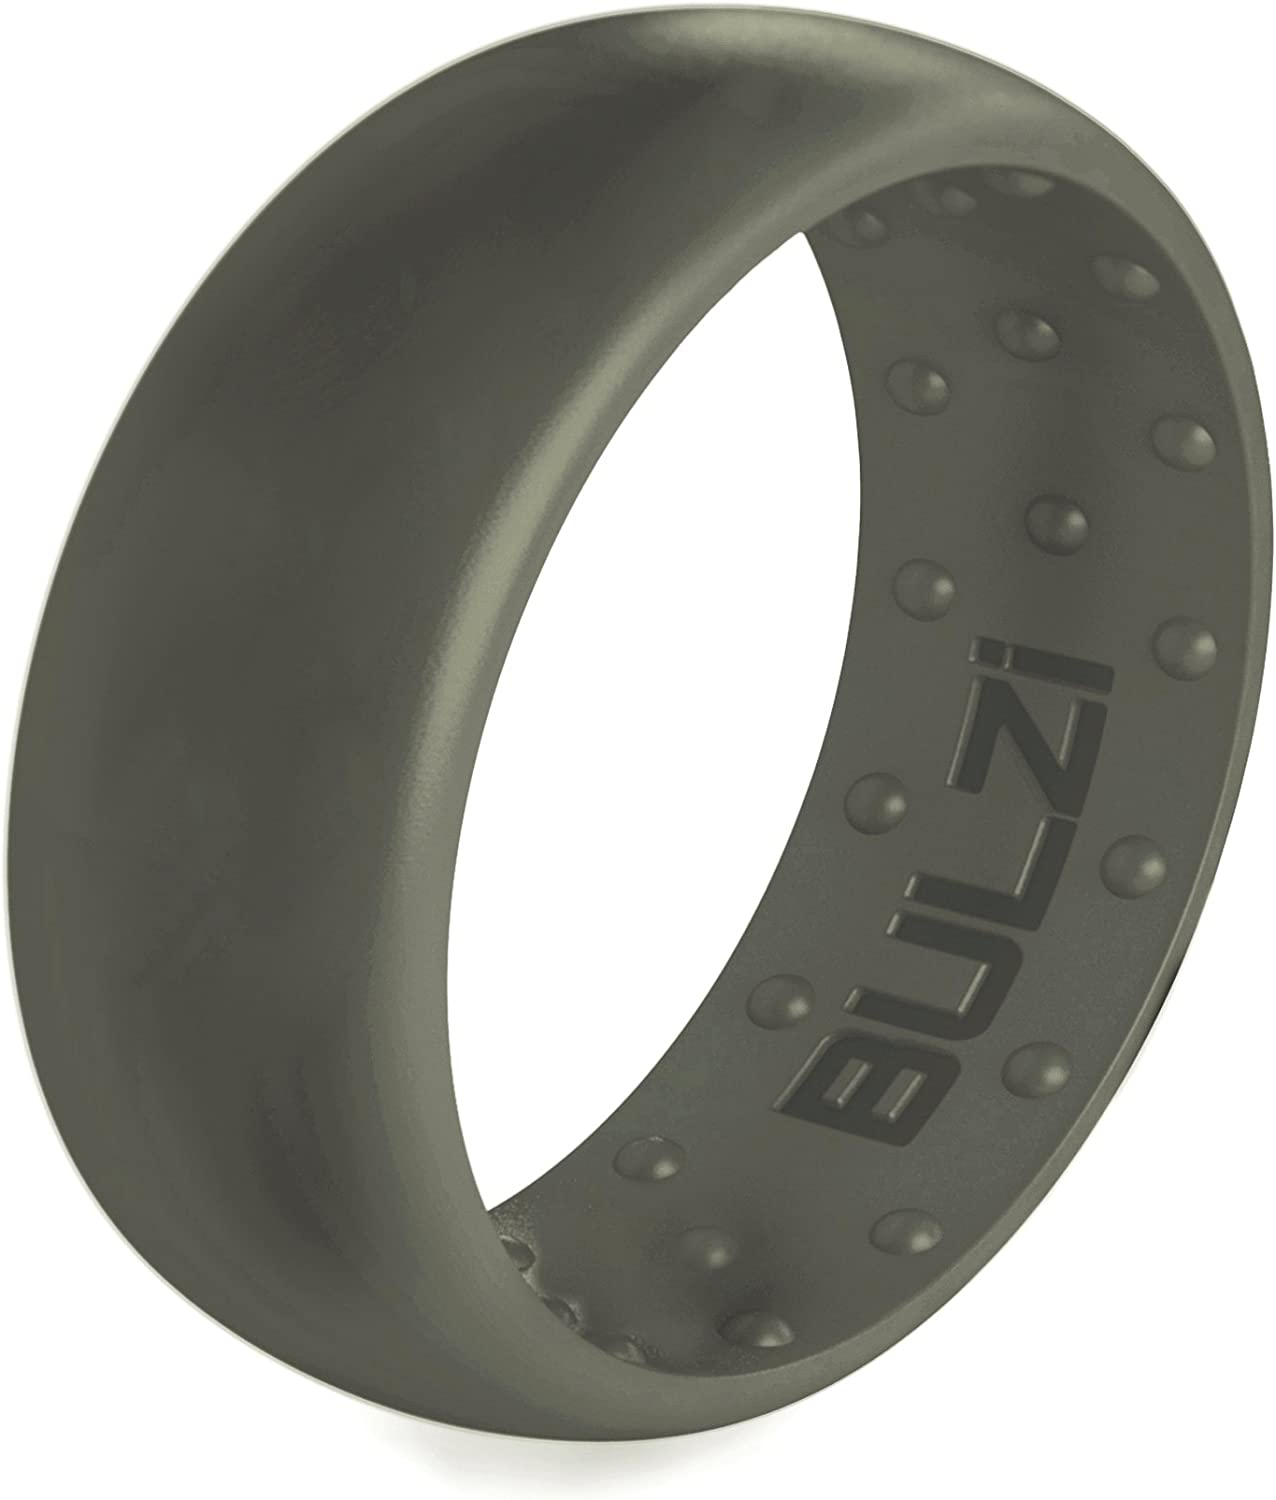 BULZi Wedding Bands Men/'s and Women/'s Rings Massaging Comfort Fit Premium Silicone Ring with Airflow Breathable Flexible Work Safety Comfort